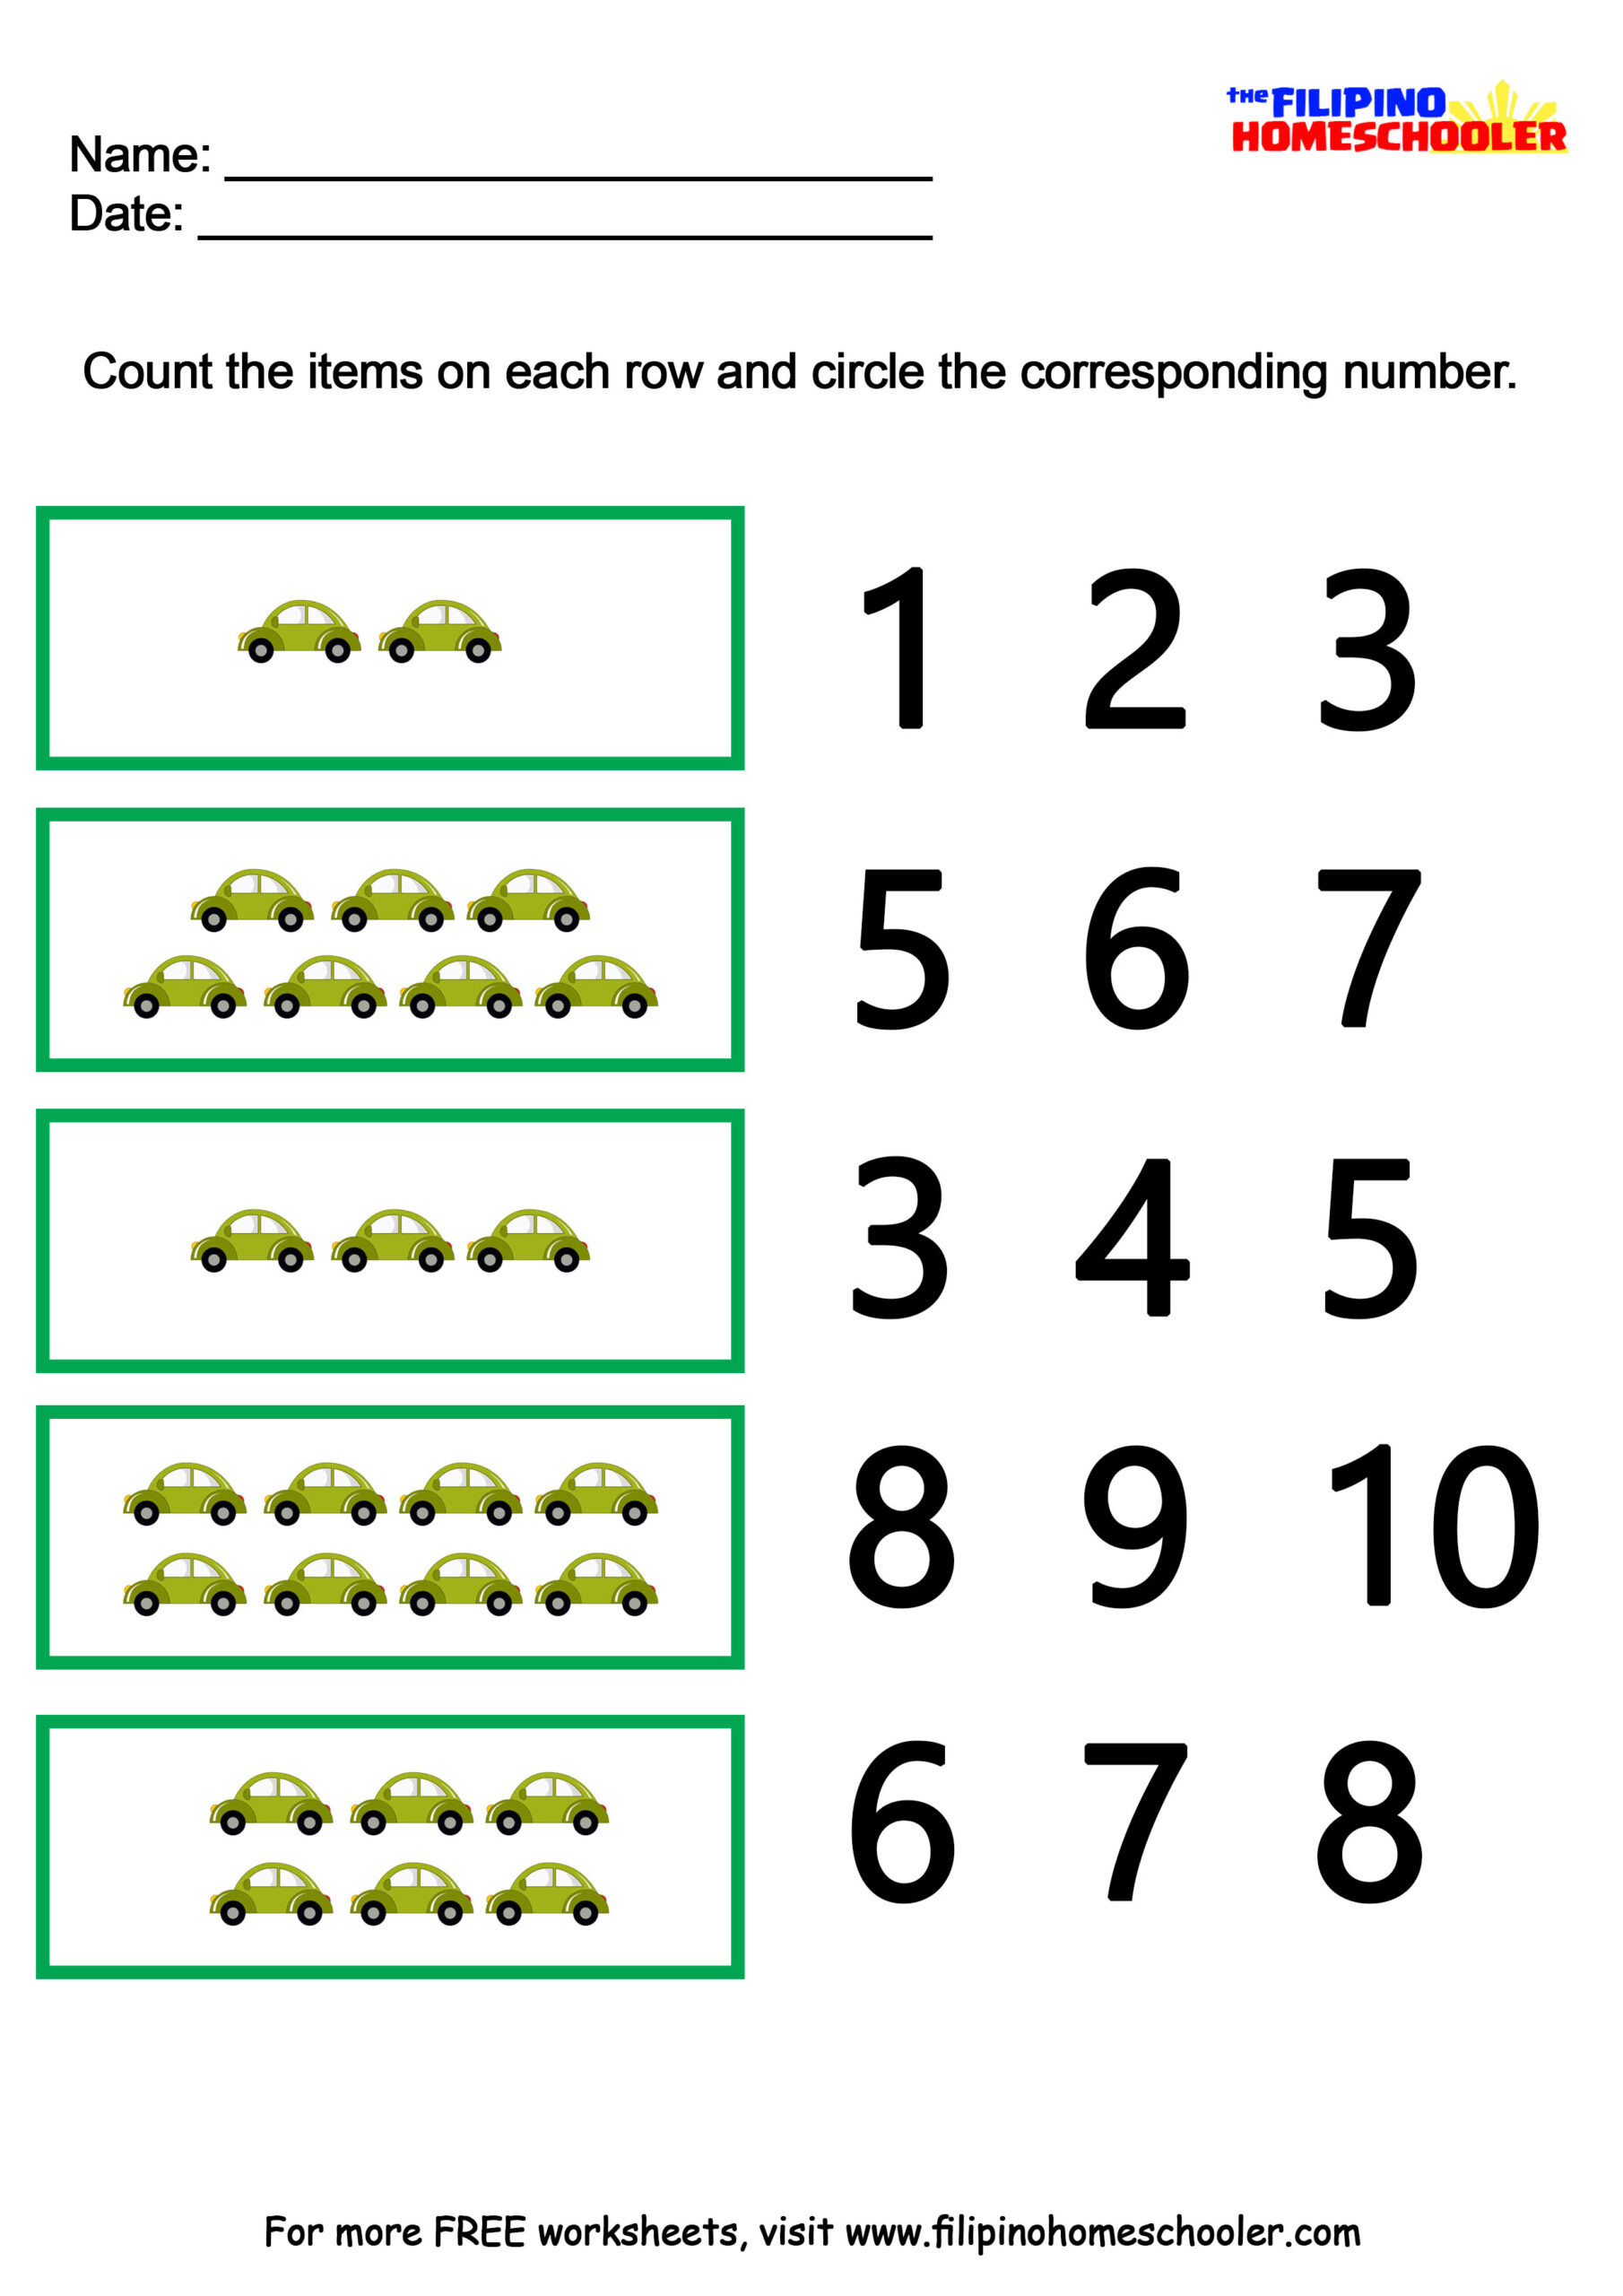 Multiple Choice Math Worksheets Number Recognition Worksheets the Filipino Homeschooler